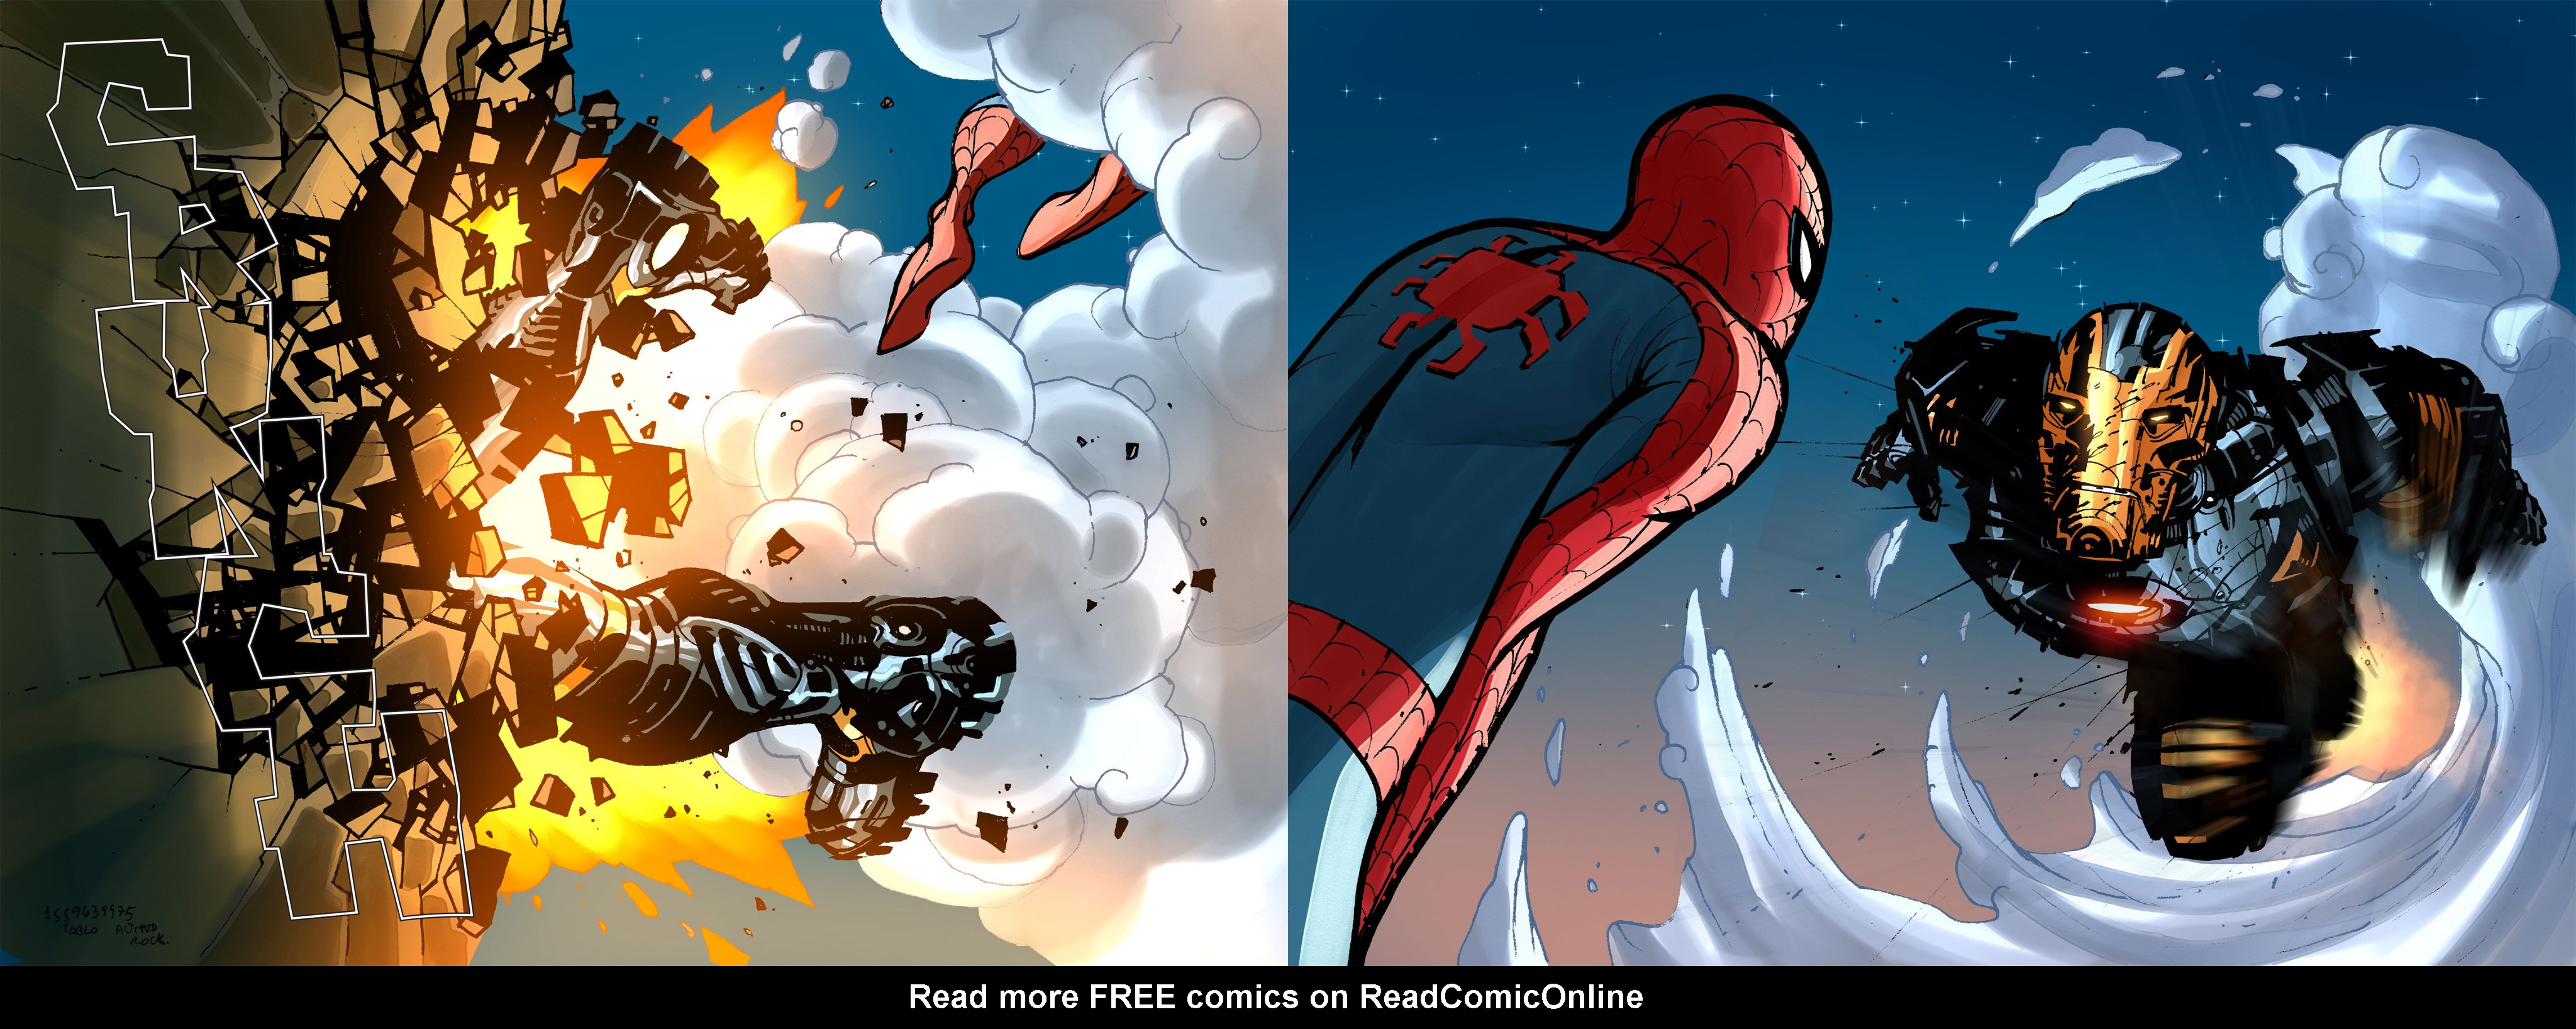 Read online Amazing Spider-Man: Who Am I? comic -  Issue # Full (Part 1) - 161